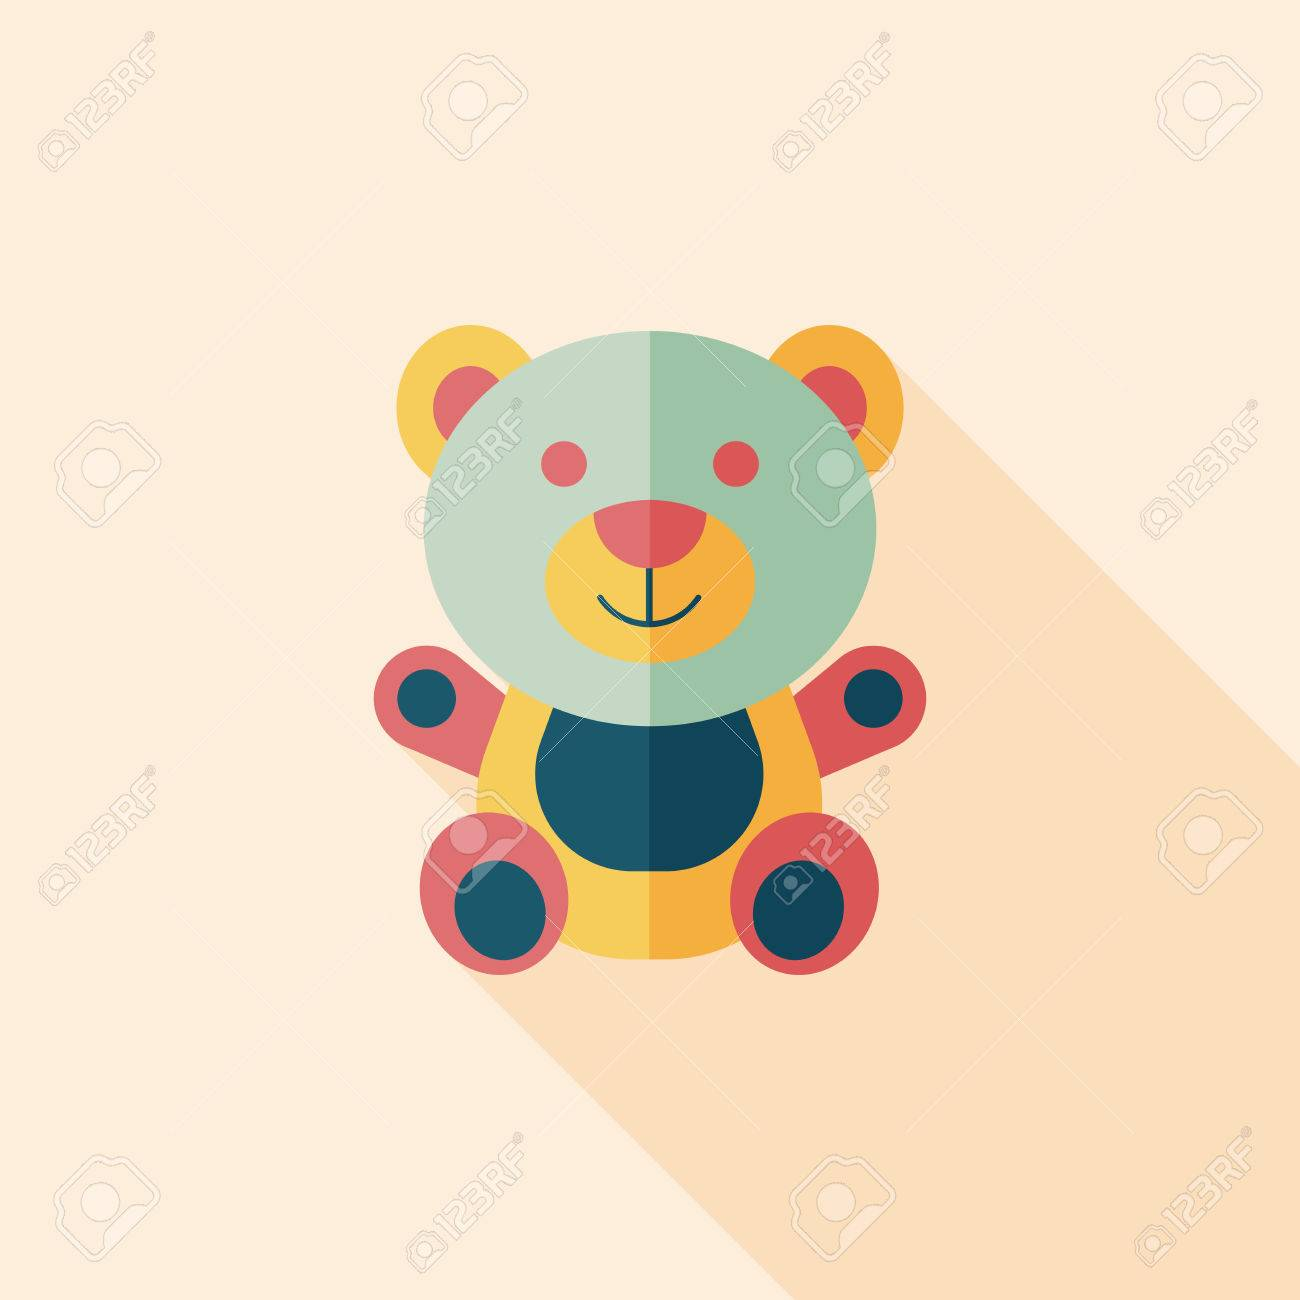 teddy bear flat icon with long shadow eps 10 royalty free cliparts